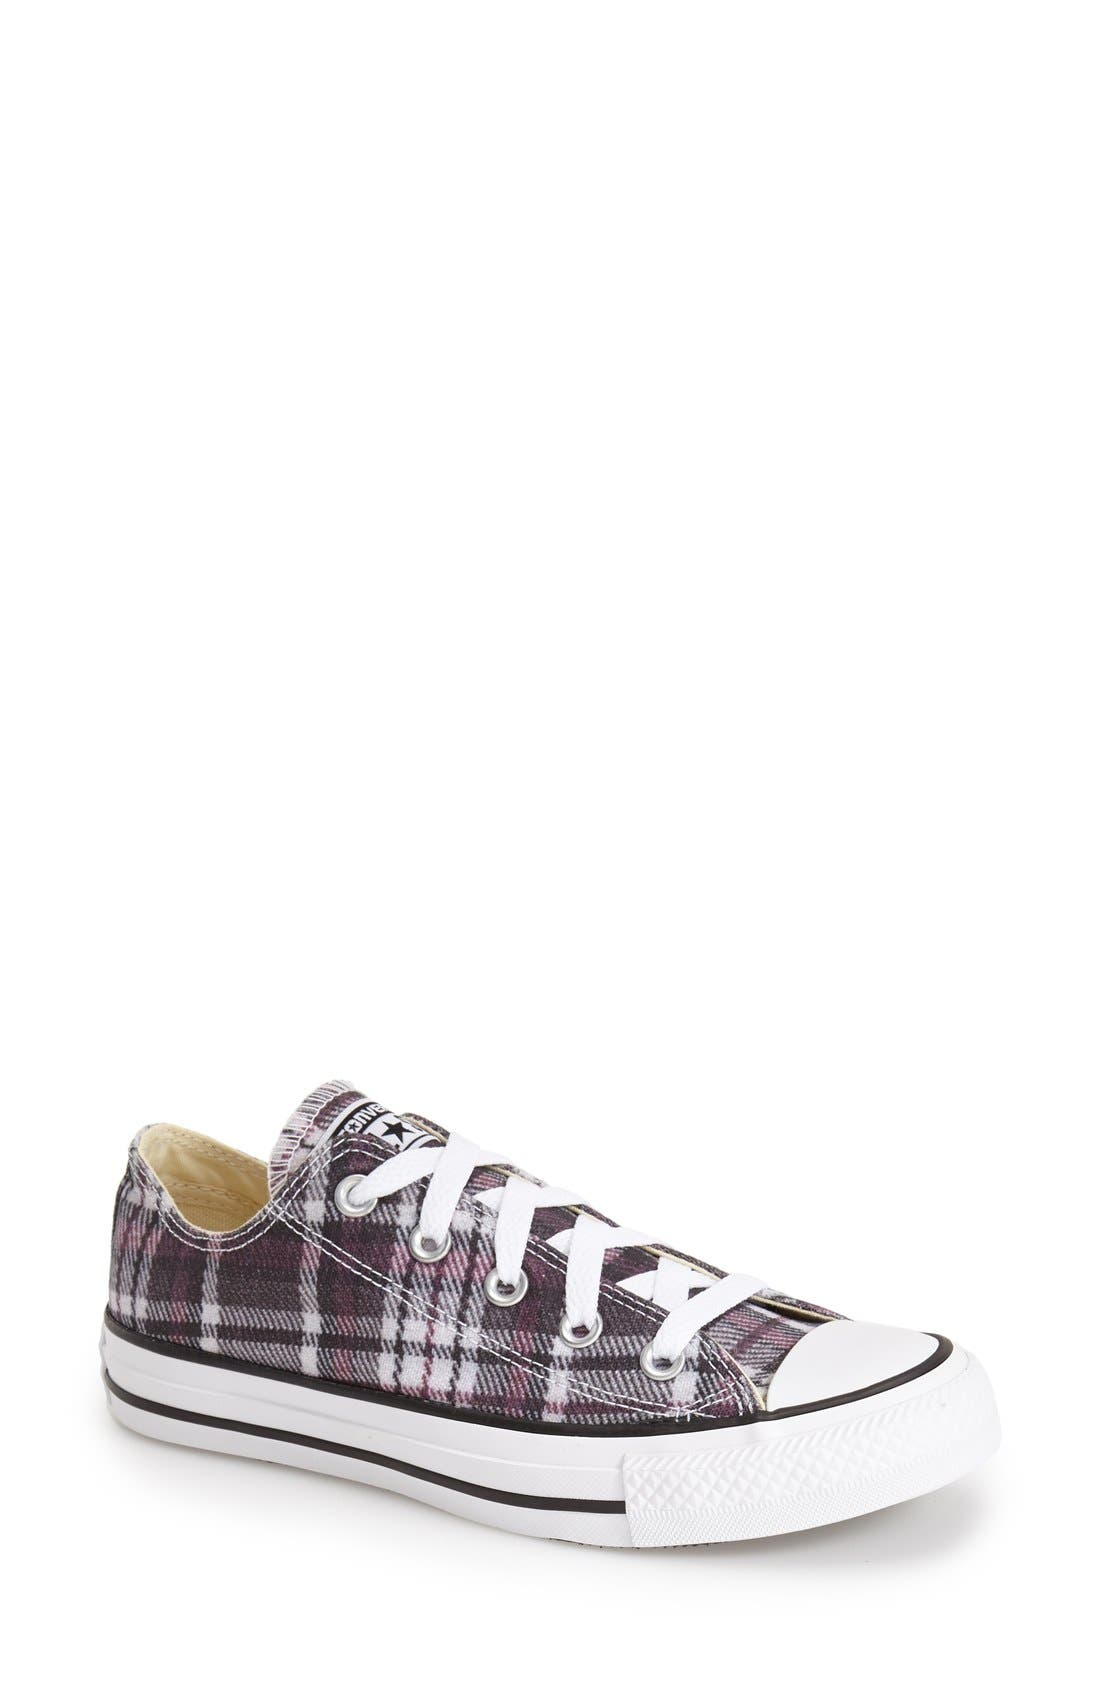 Alternate Image 1 Selected - Converse Chuck Taylor® All Star® Plaid Low Top Sneaker (Women)